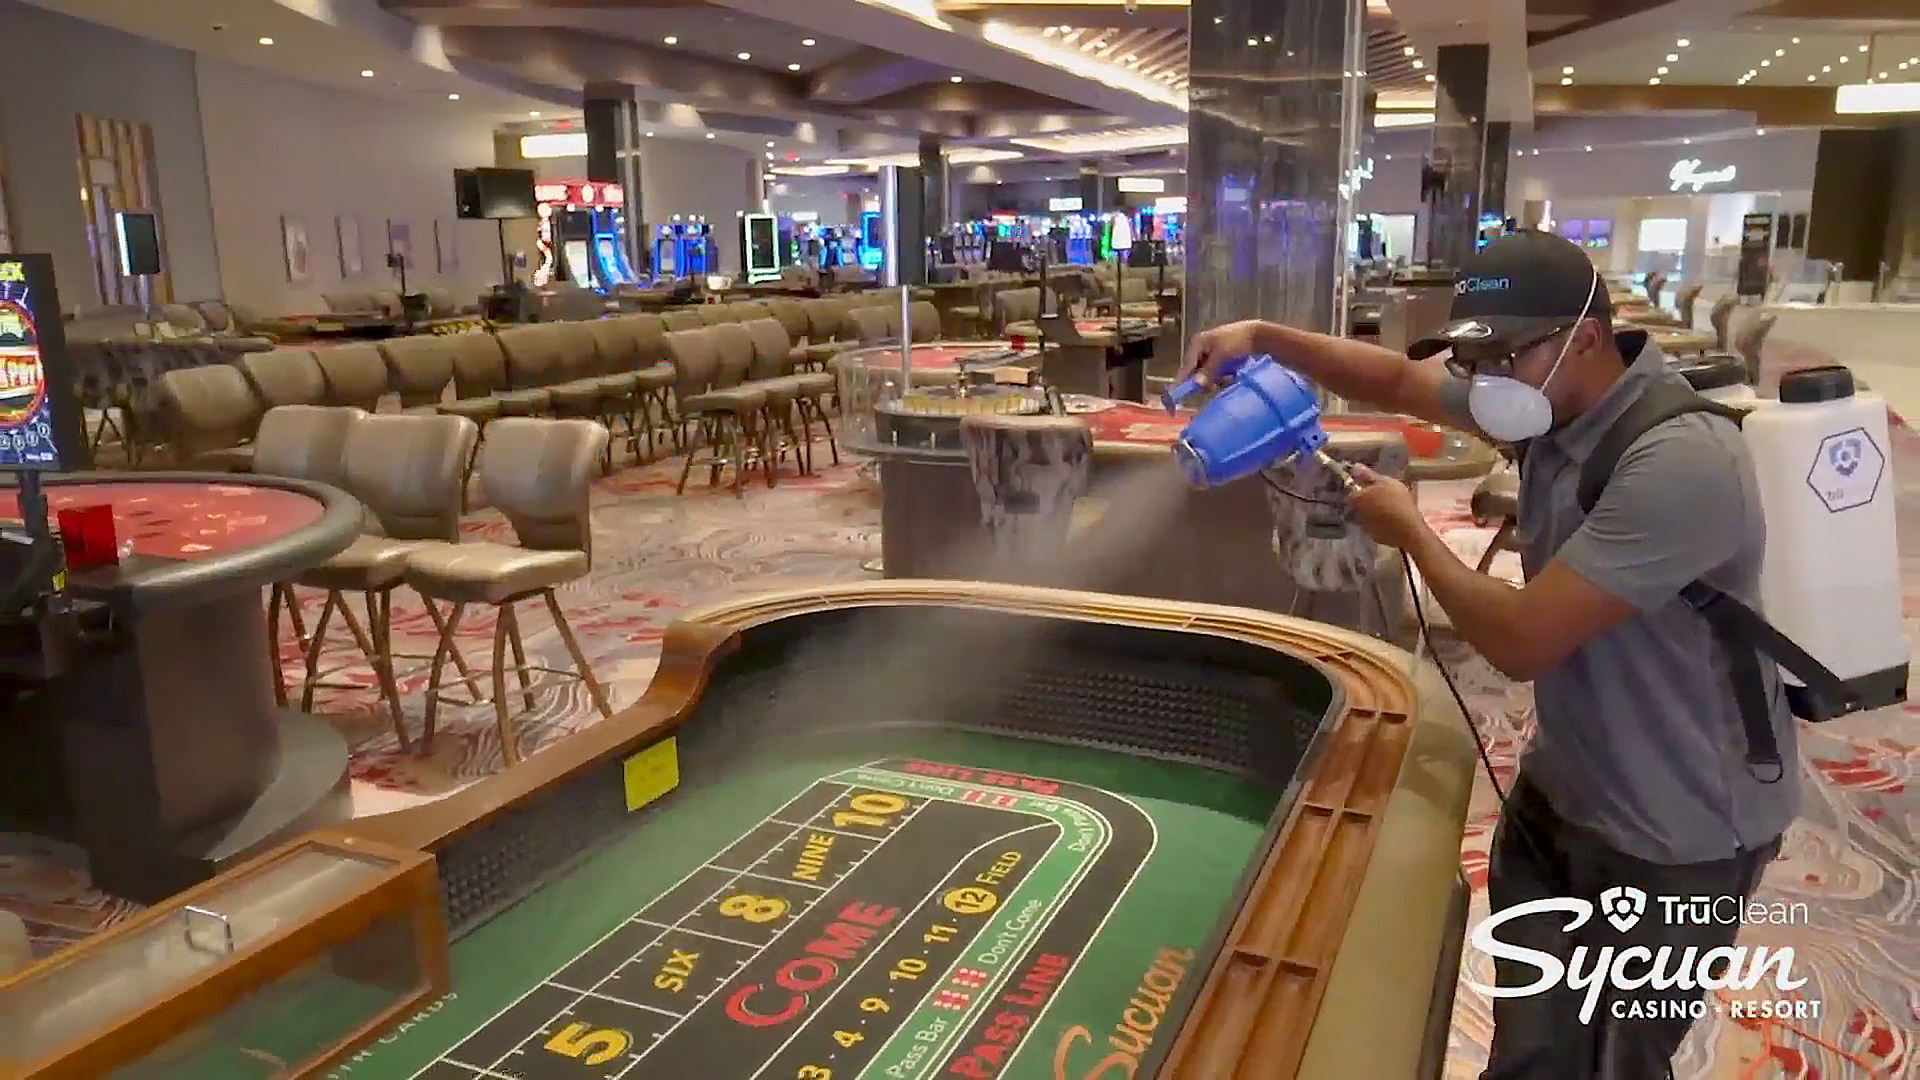 A worker sprays disinfectant on a craps table at Sycuan Casino (Video: Sycuan Casino)